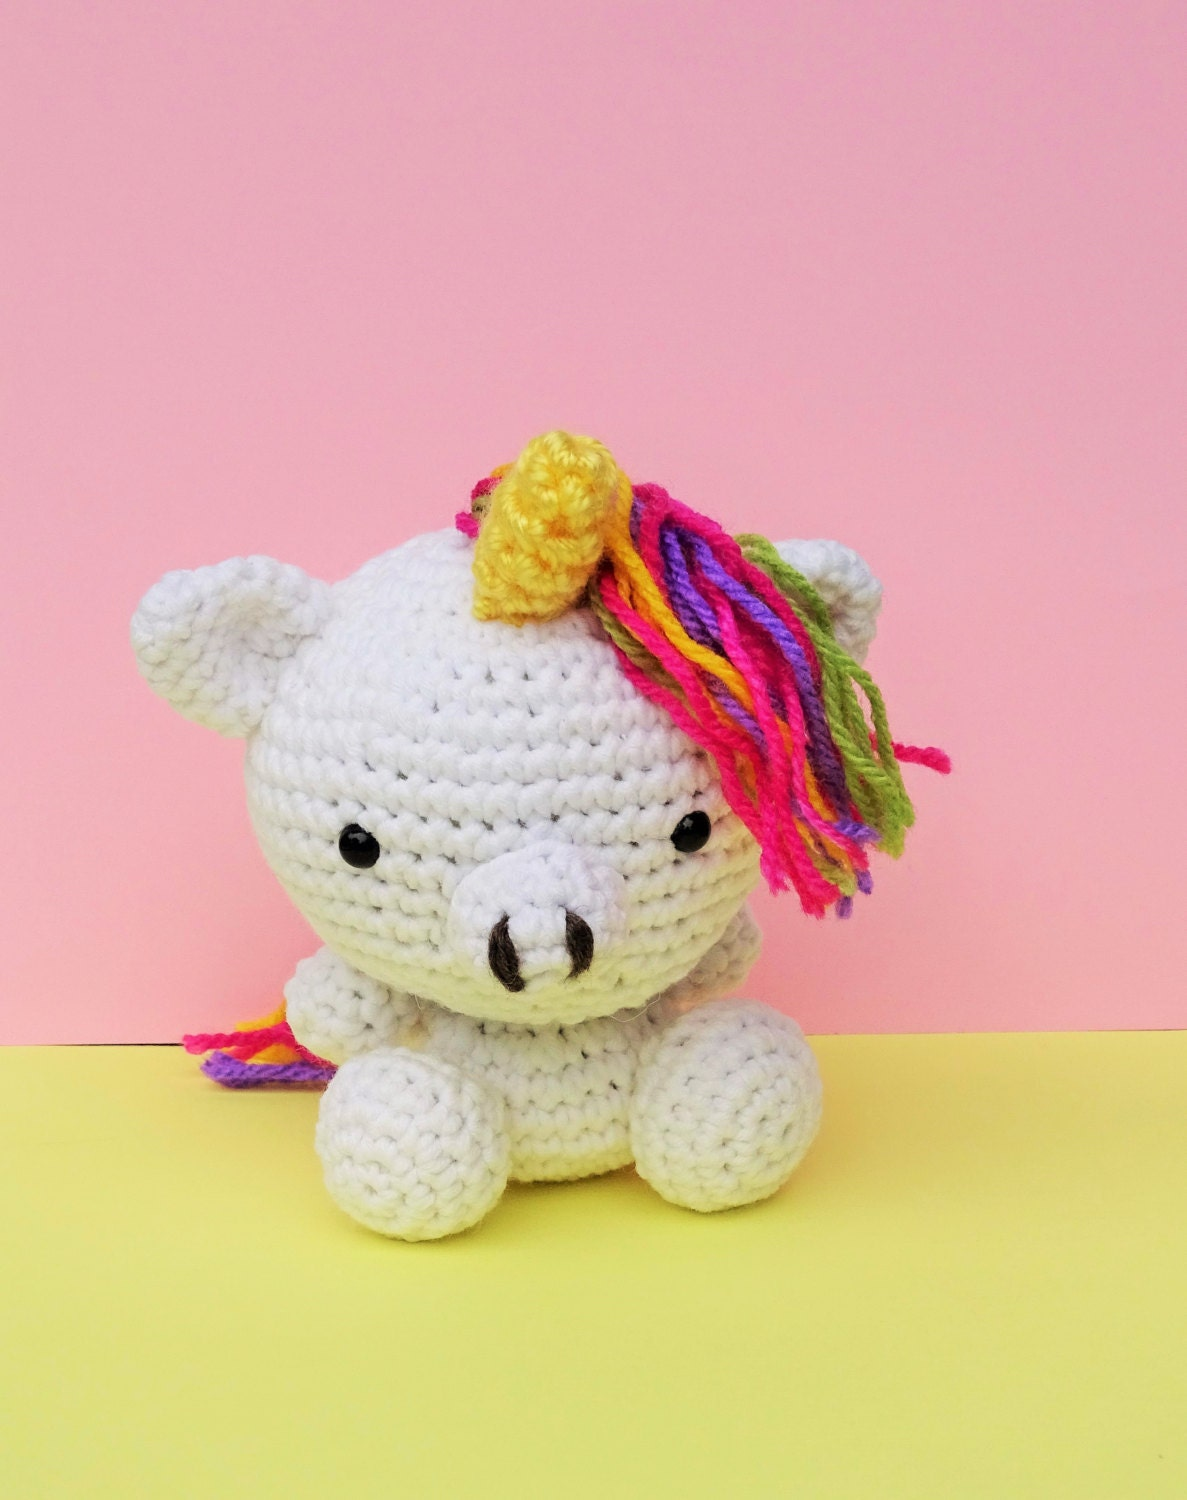 Unicorn Amigurumi Yarn Yard : Amigurumi Unicorn Crochet Unicorn Toy Amigurumi by ...